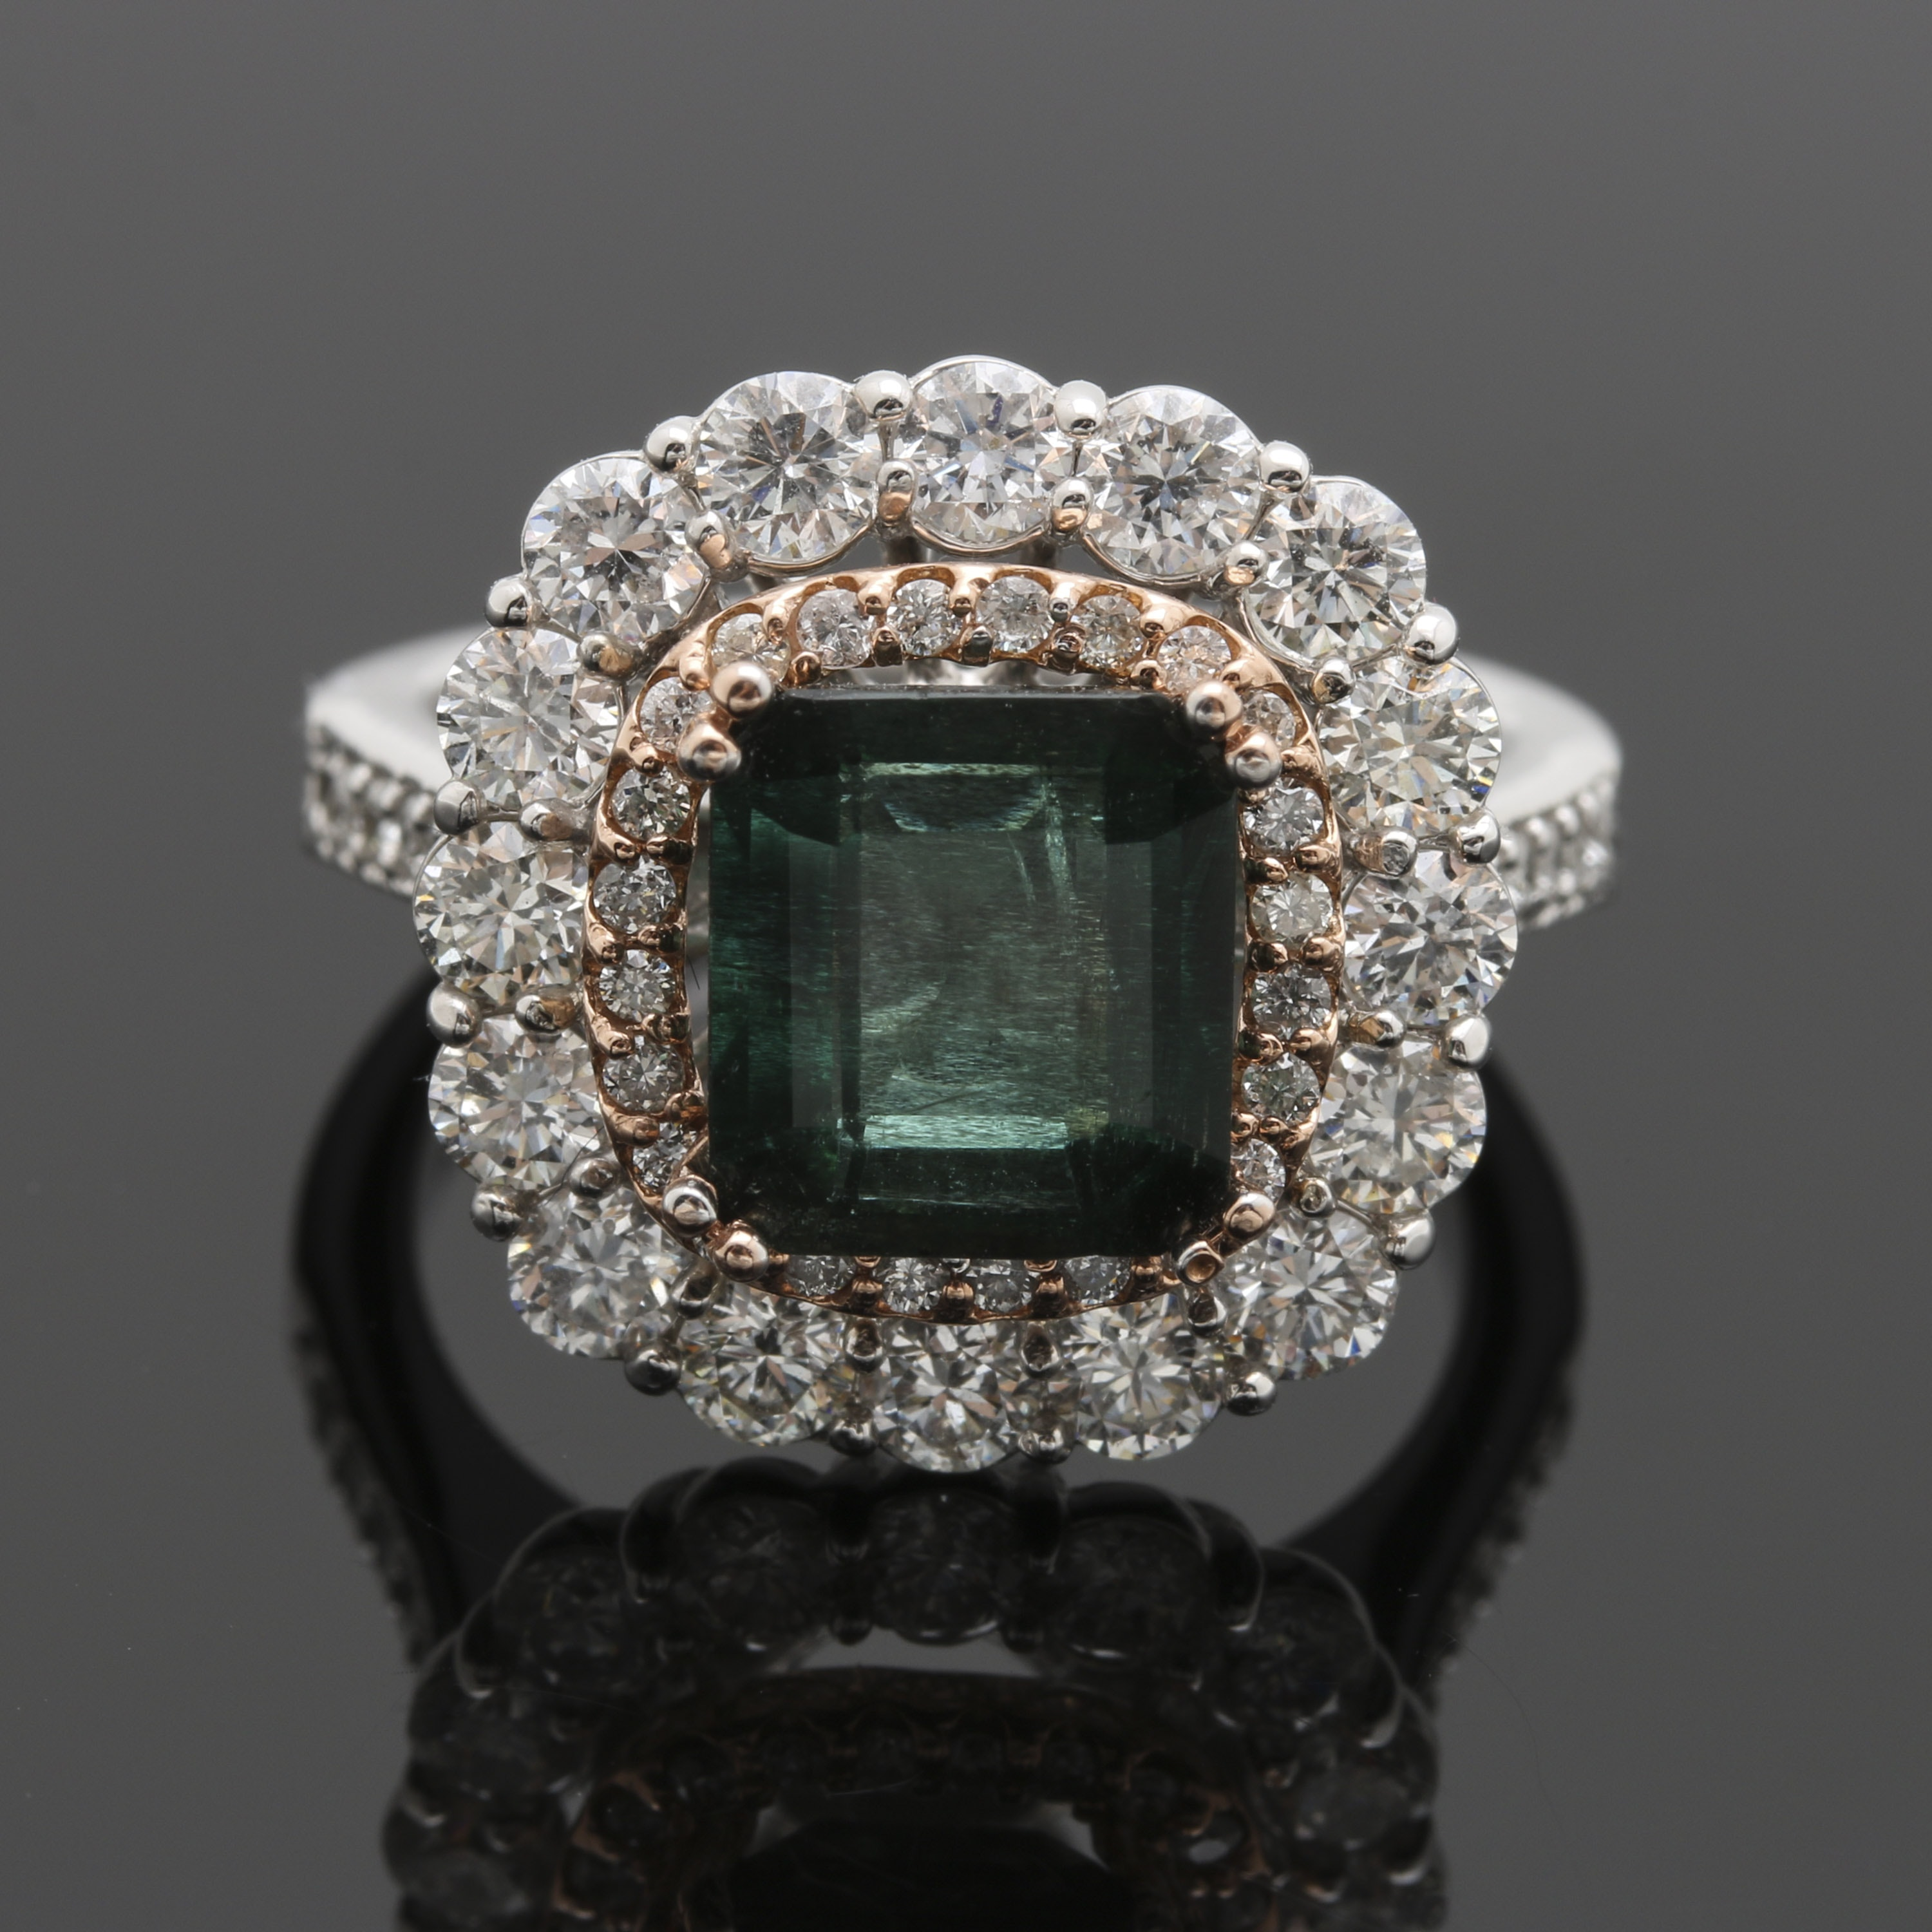 14K White and Rose Gold 2.38 CT Emerald and 2.01 CTW Diamond Ring